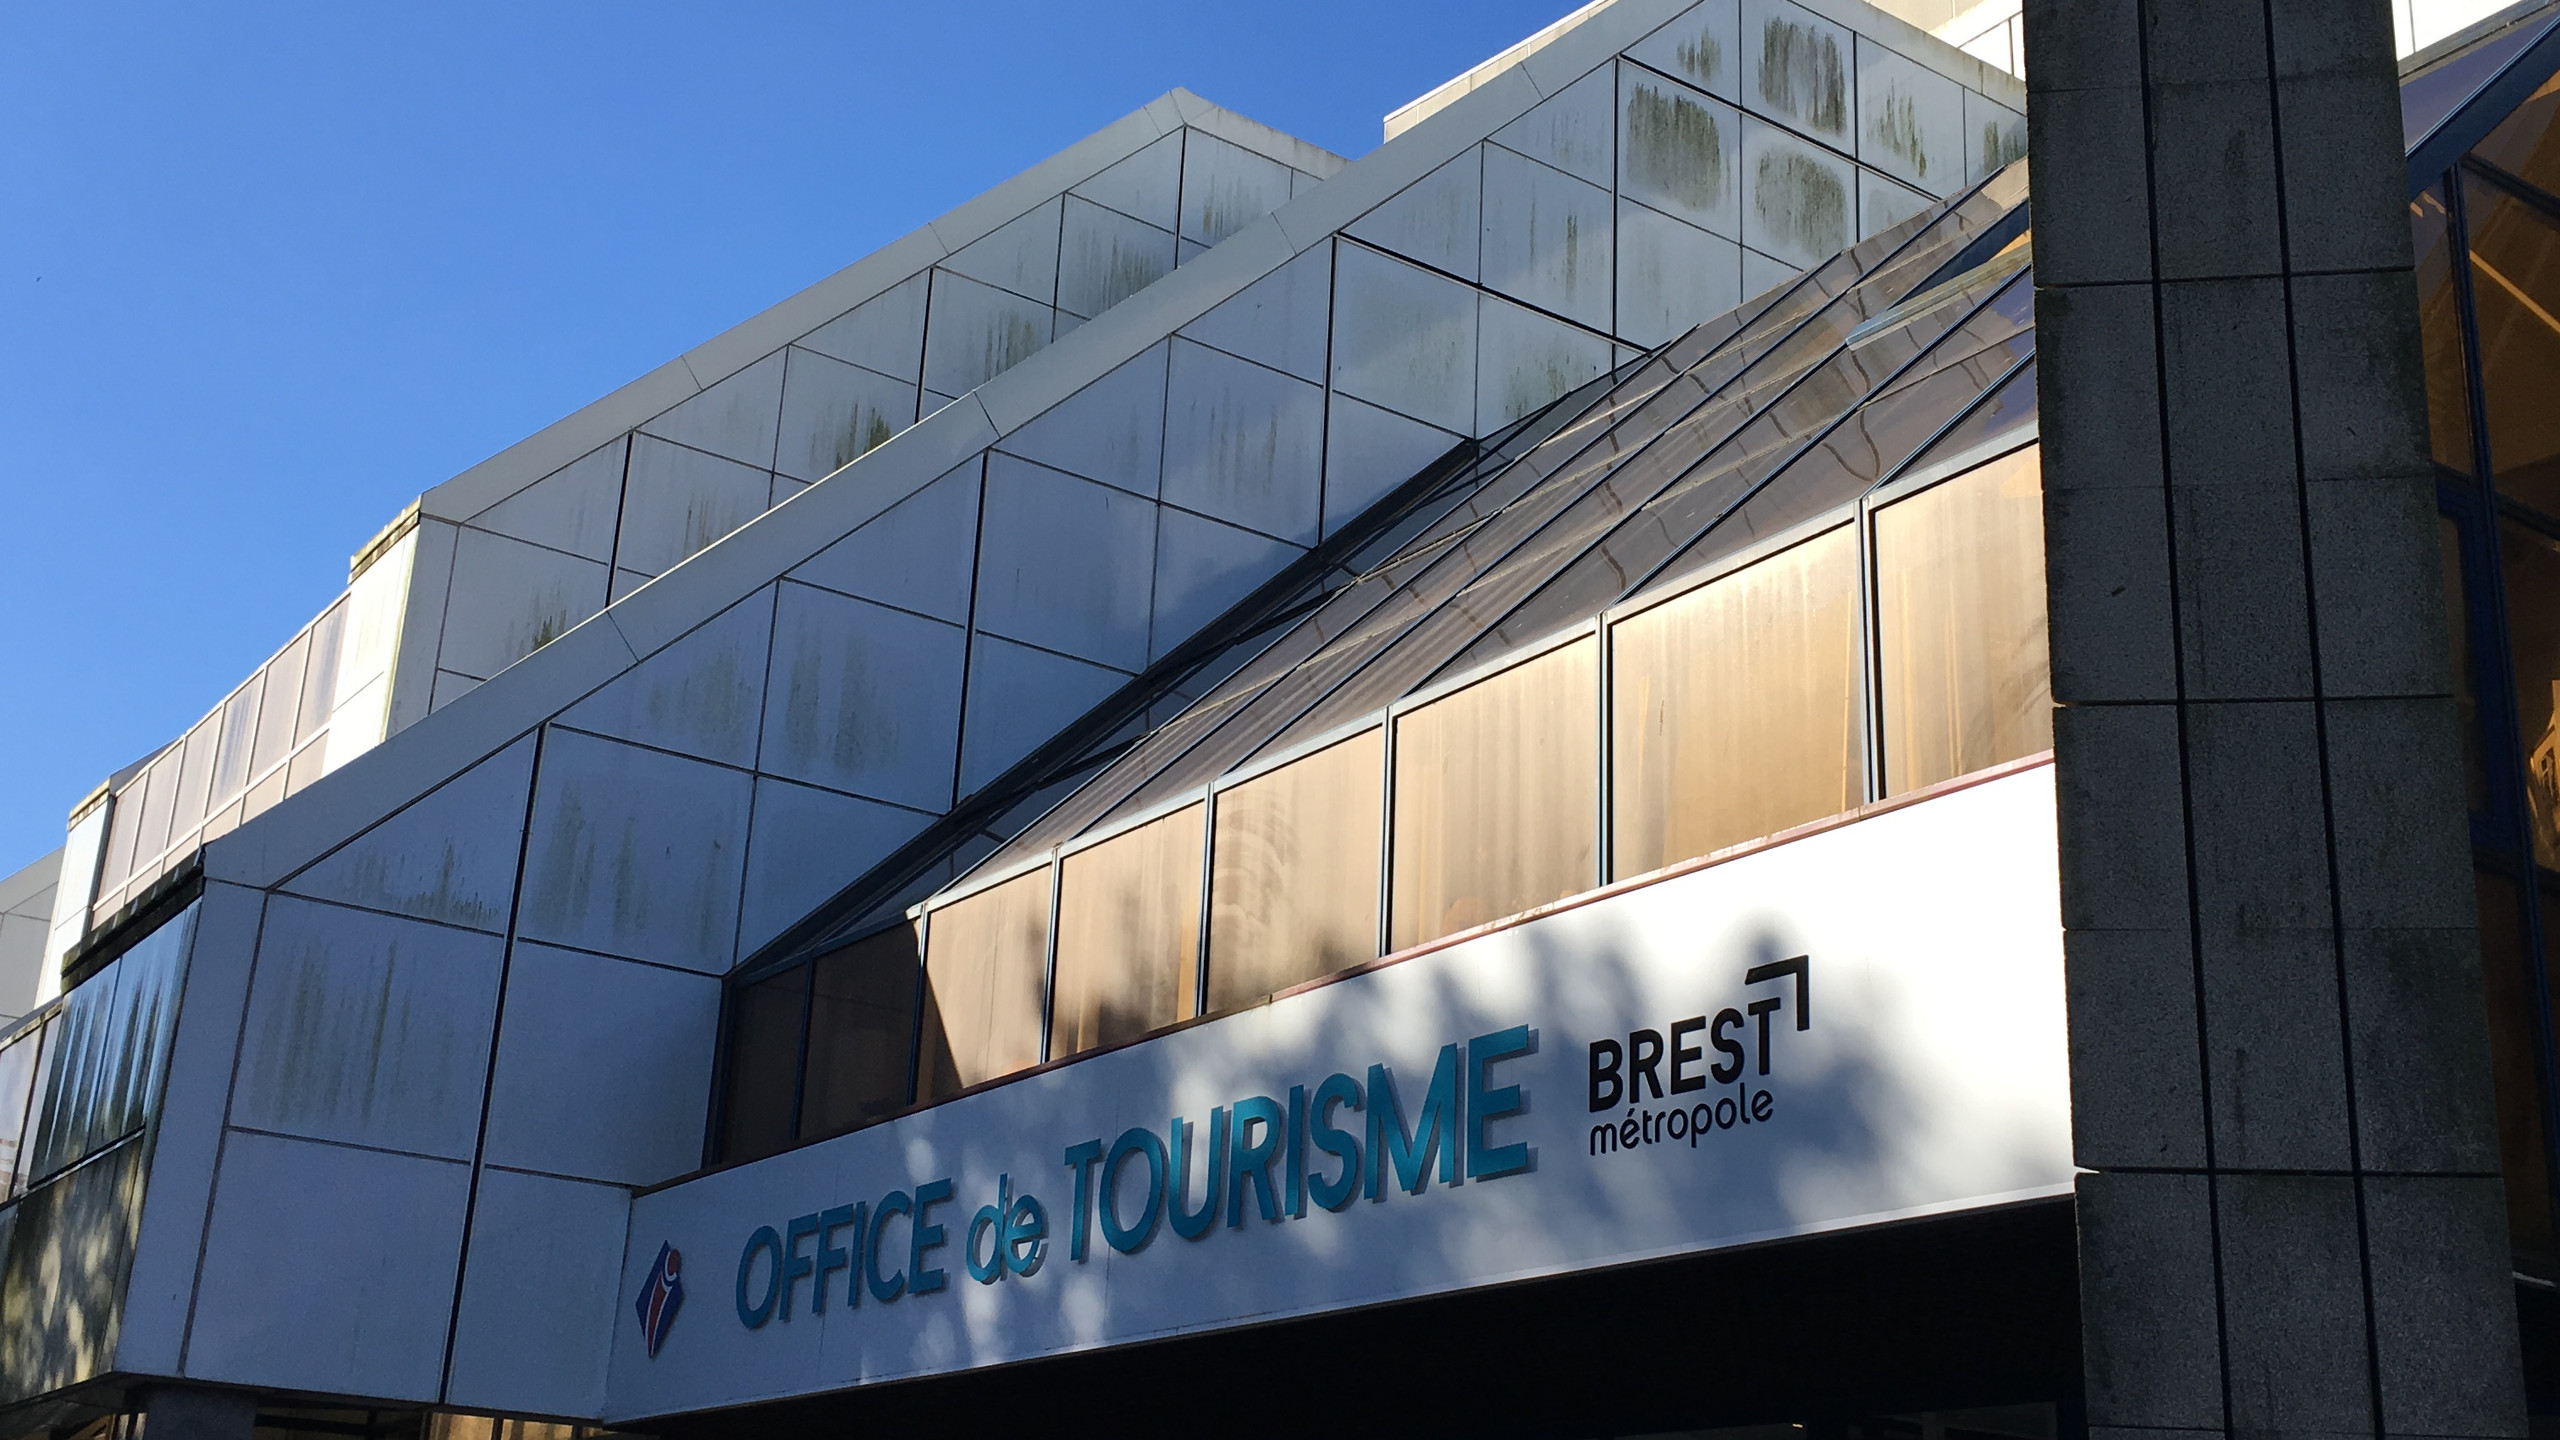 Office du tourisme Brest